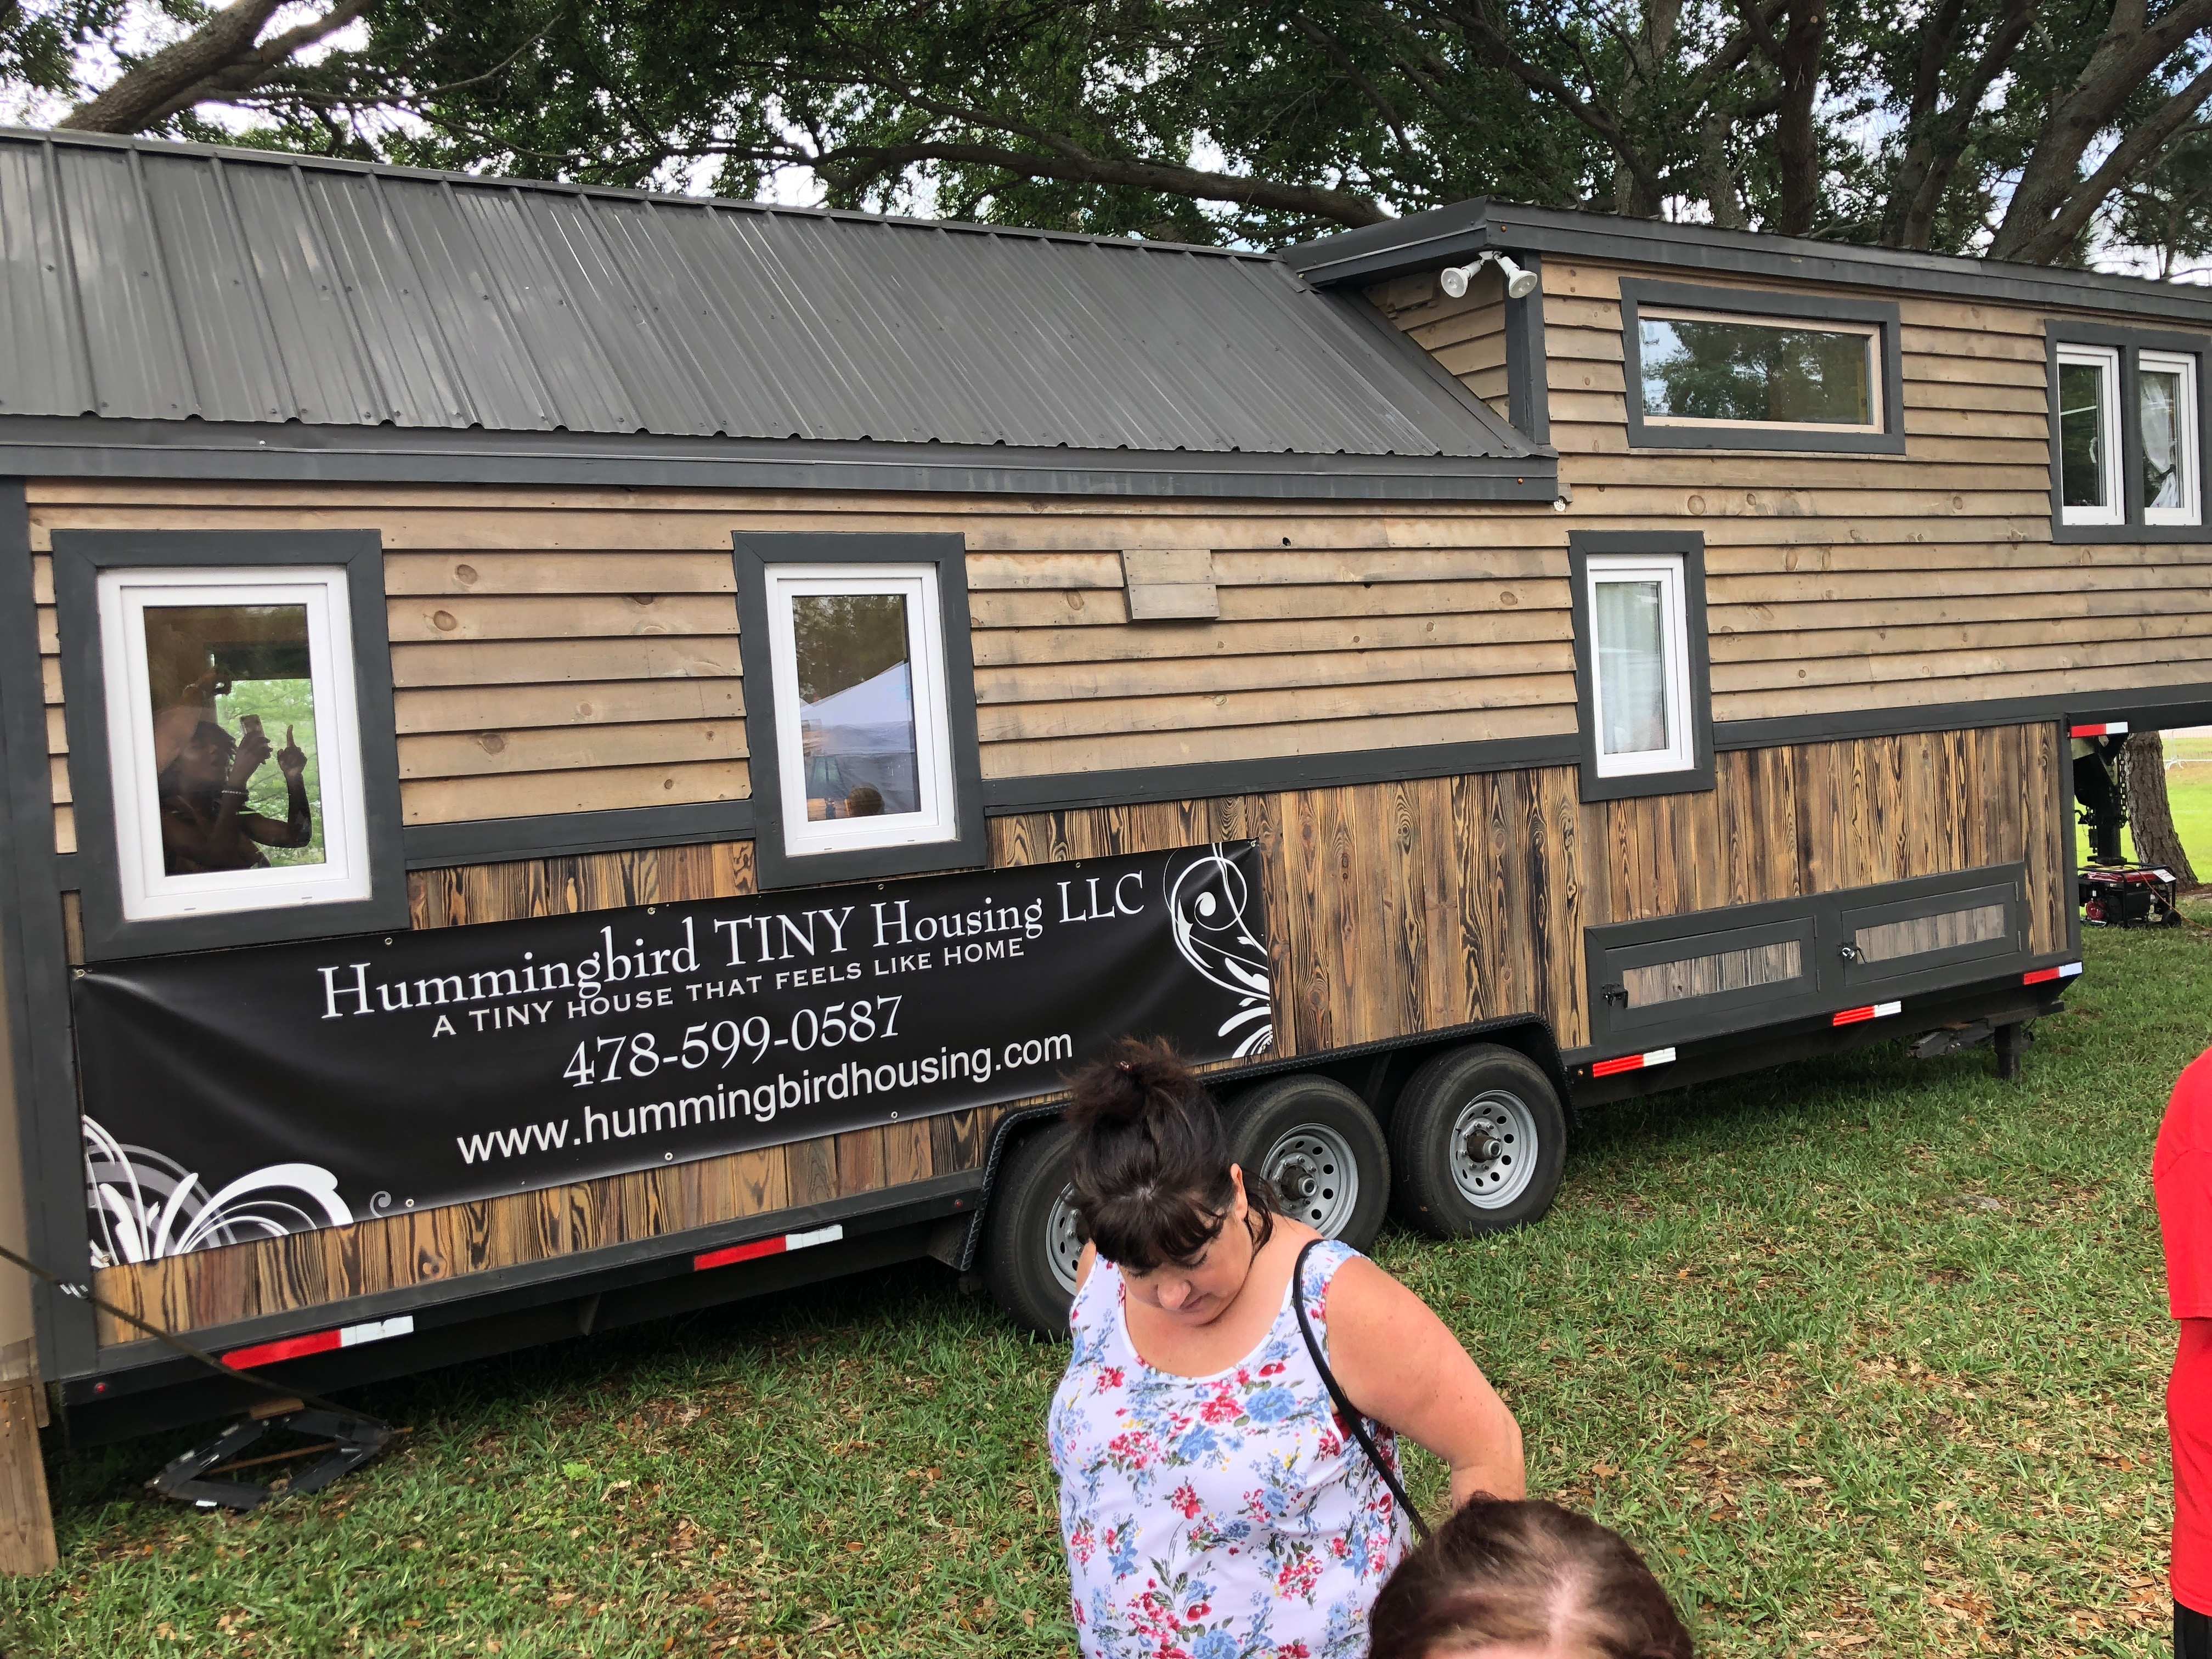 St Pete tiny house festival